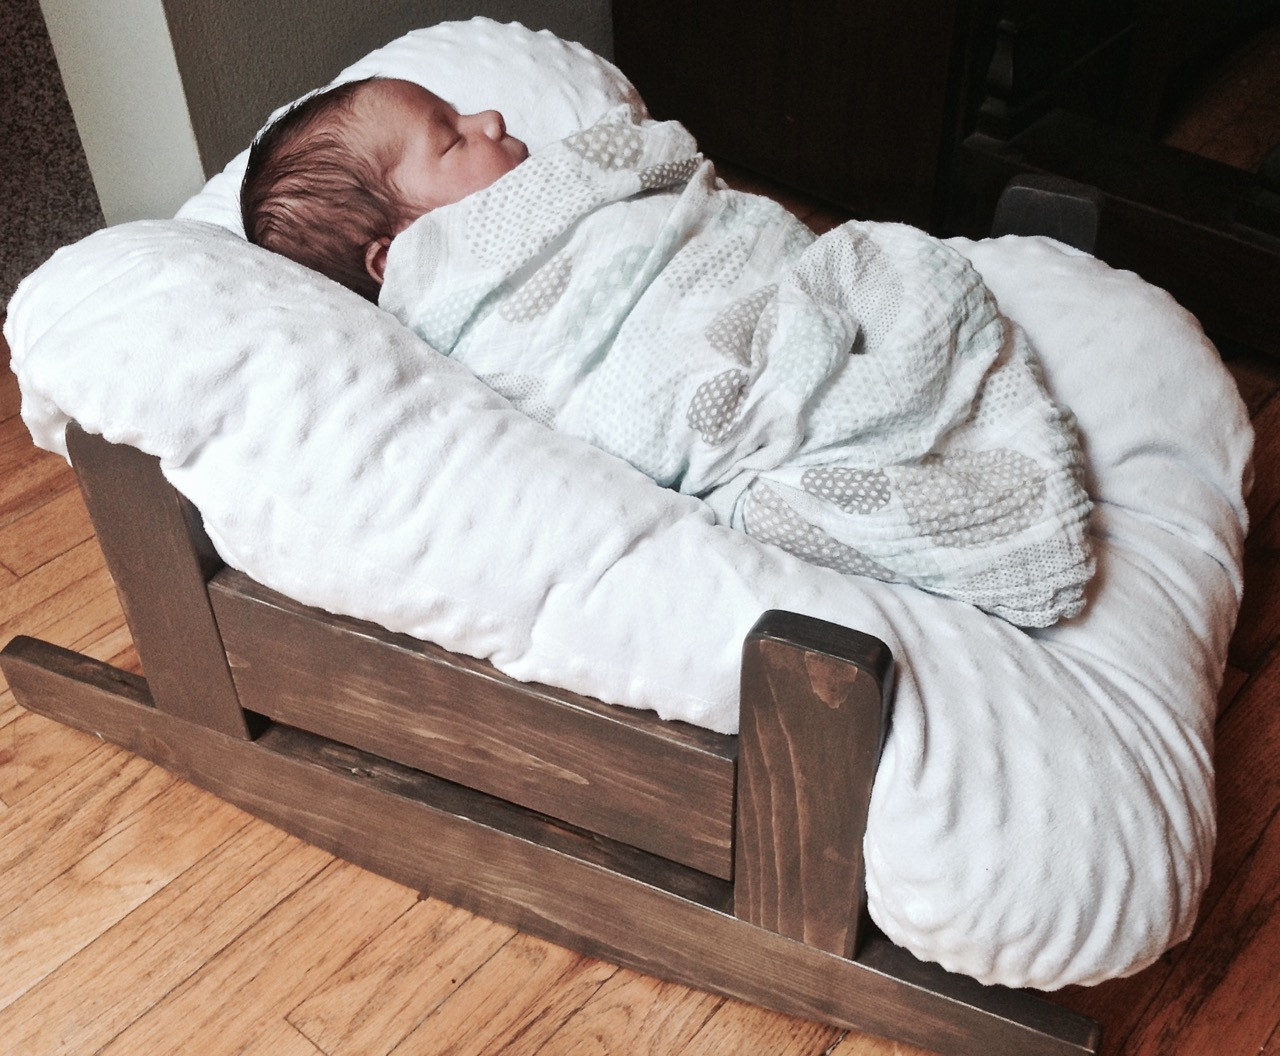 DIY Baby Pillows  The Project Lady DIY Wooden Baby Pillow Rocker Bassinet